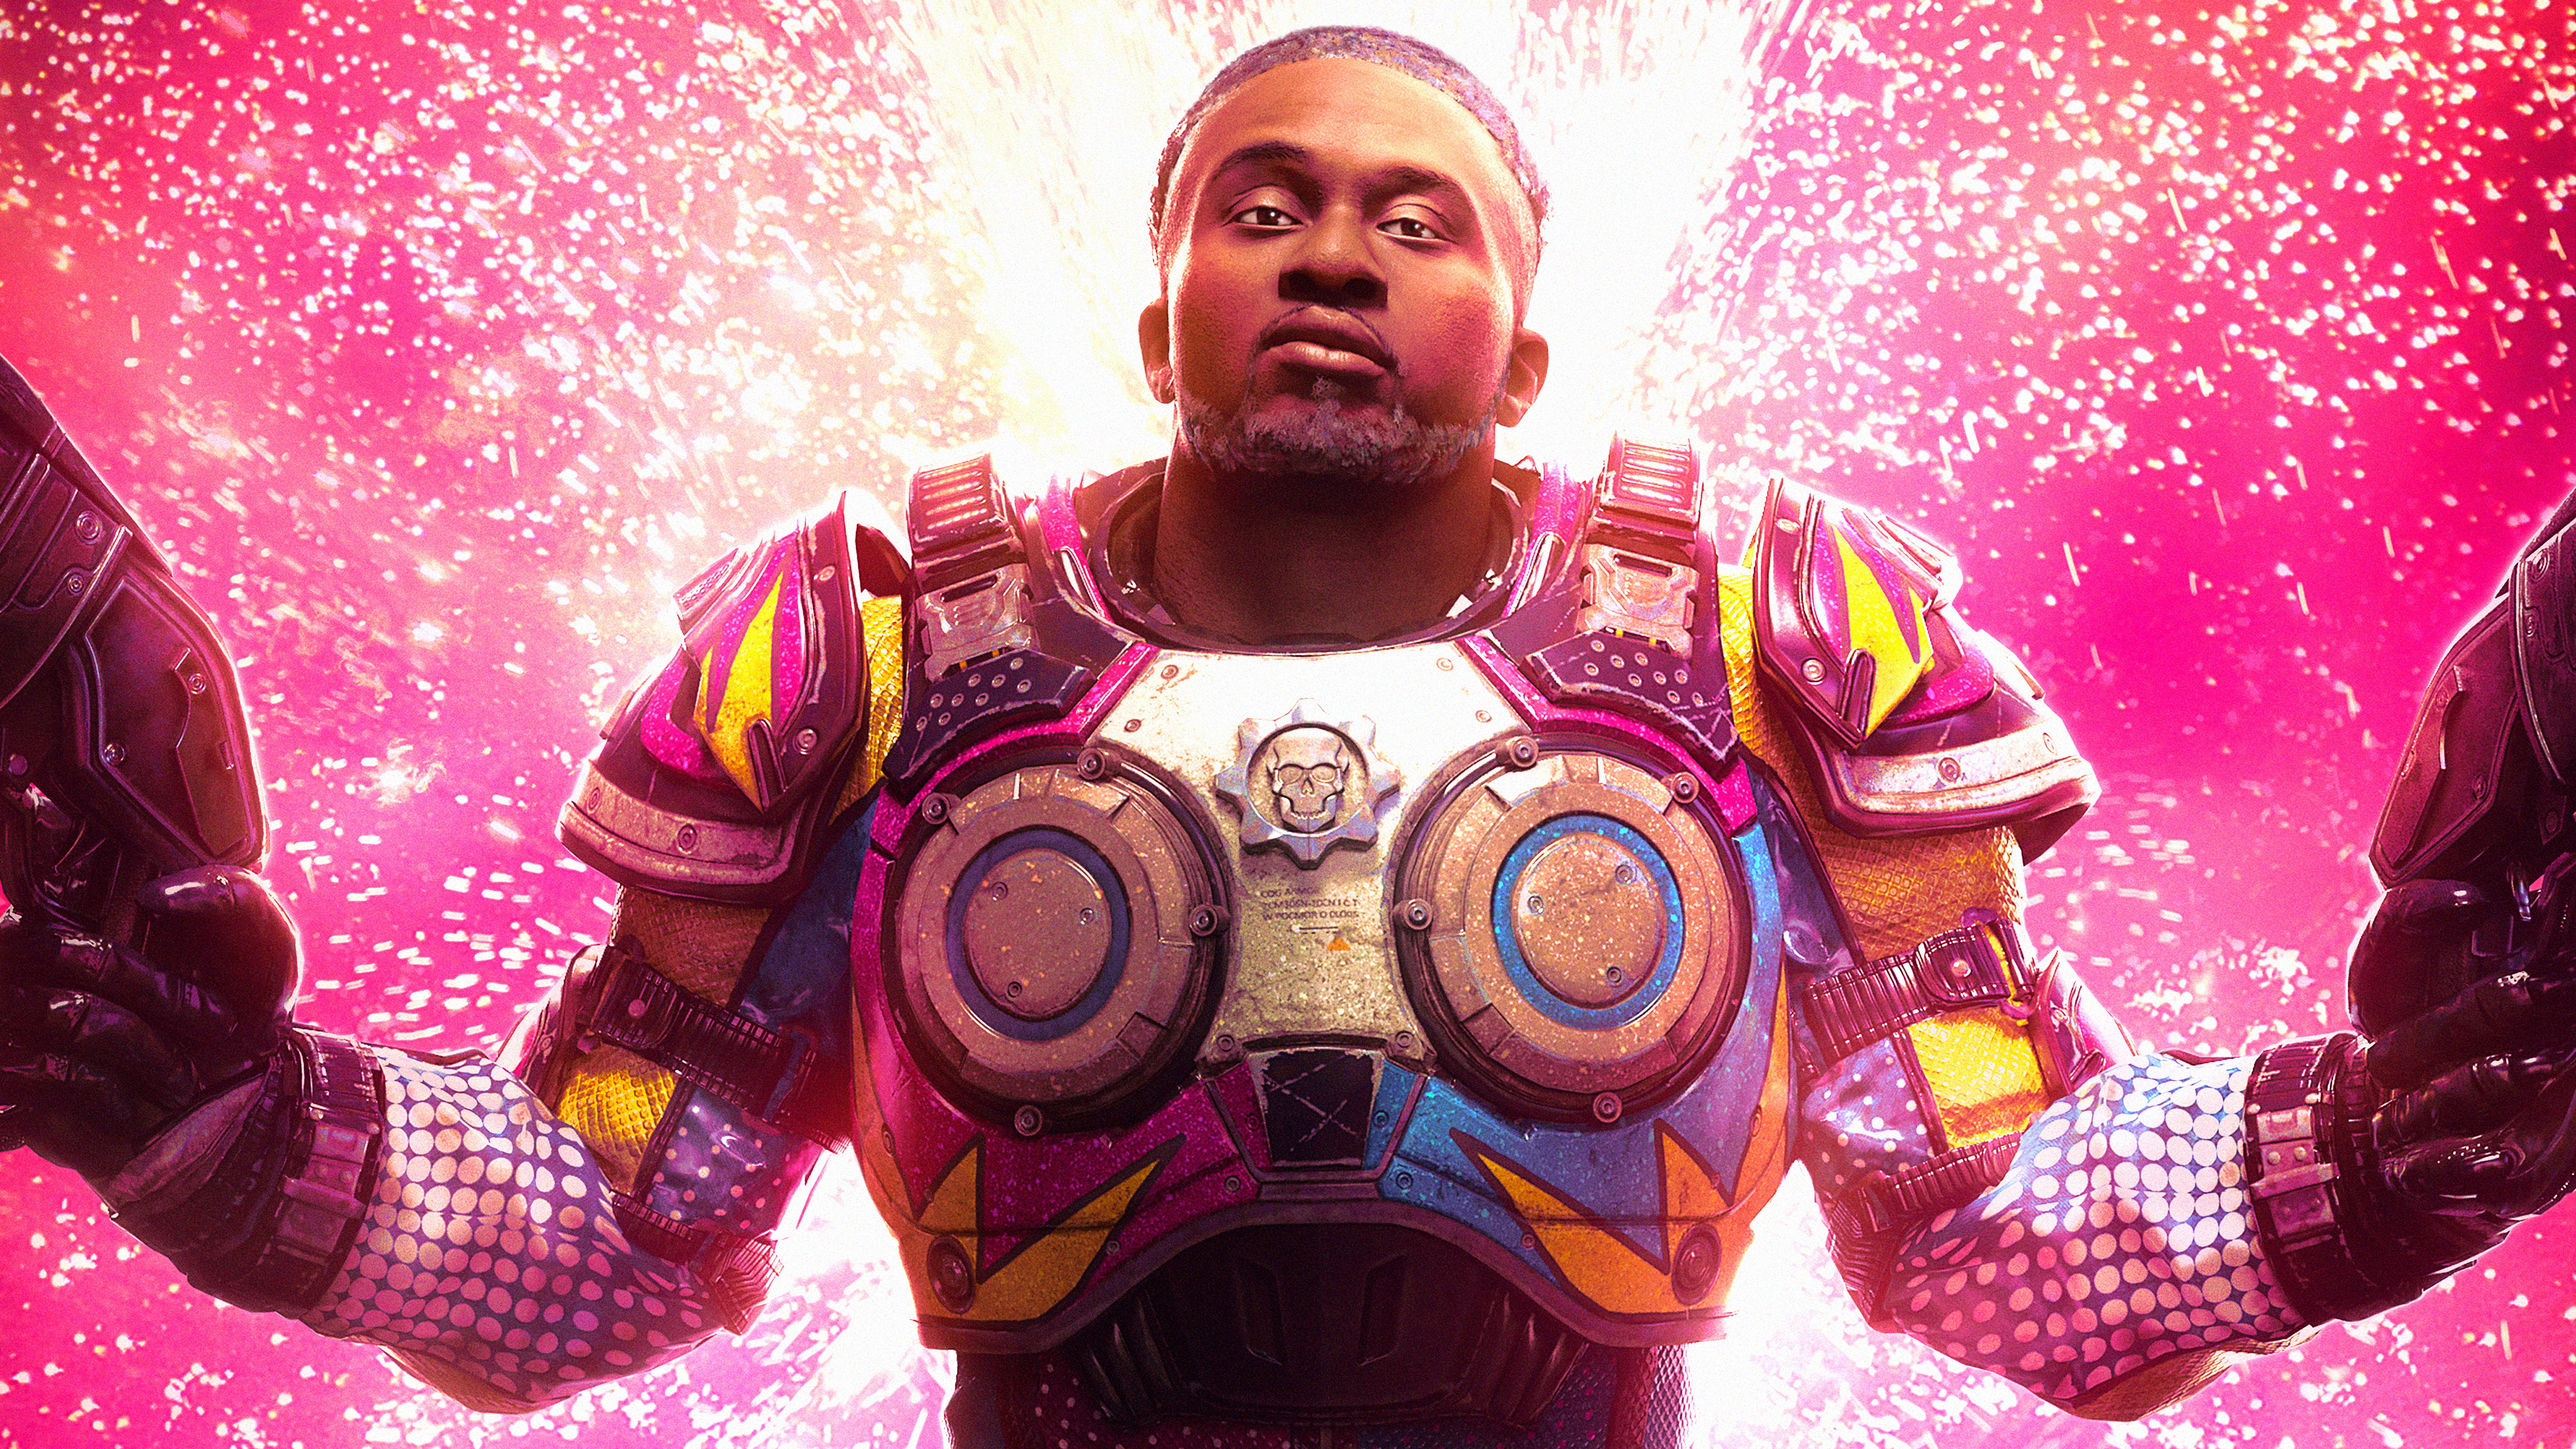 gears 5 the new day 4k 1615186331 - Gears 5 The New Day 4k - Gears 5 The New Day 4k wallpapers